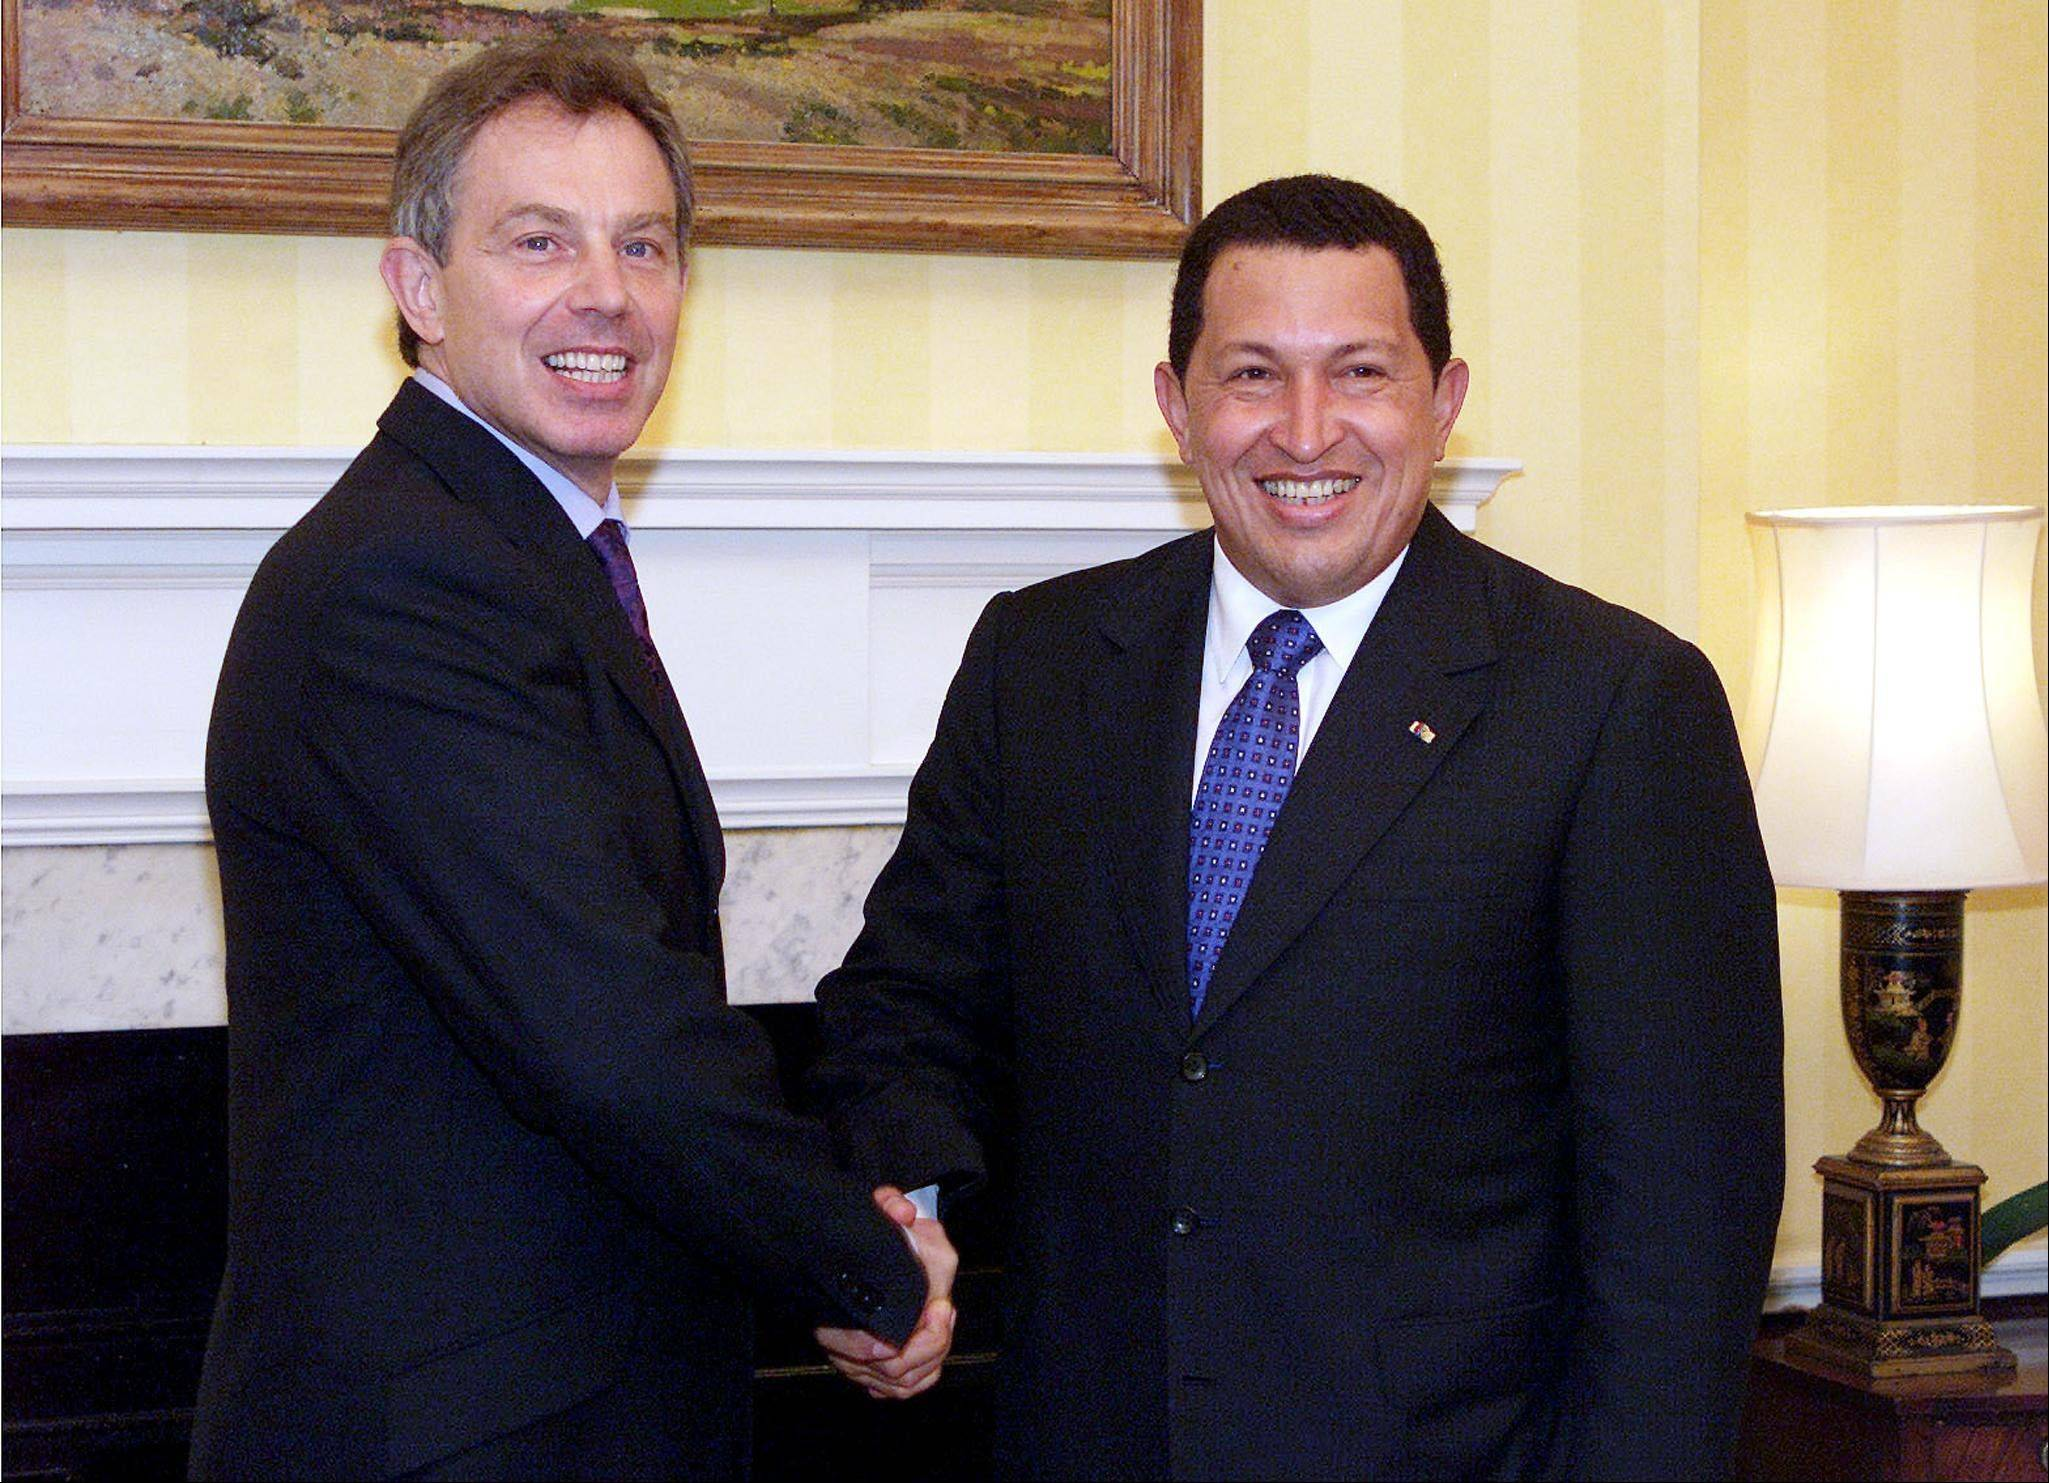 In this Oct. 23, 2001 file photo, Venezuela's President Hugo Chavez, right, is greeted by British Prime Minister Tony Blair at Blair's No.10 Downing Street residence in London.